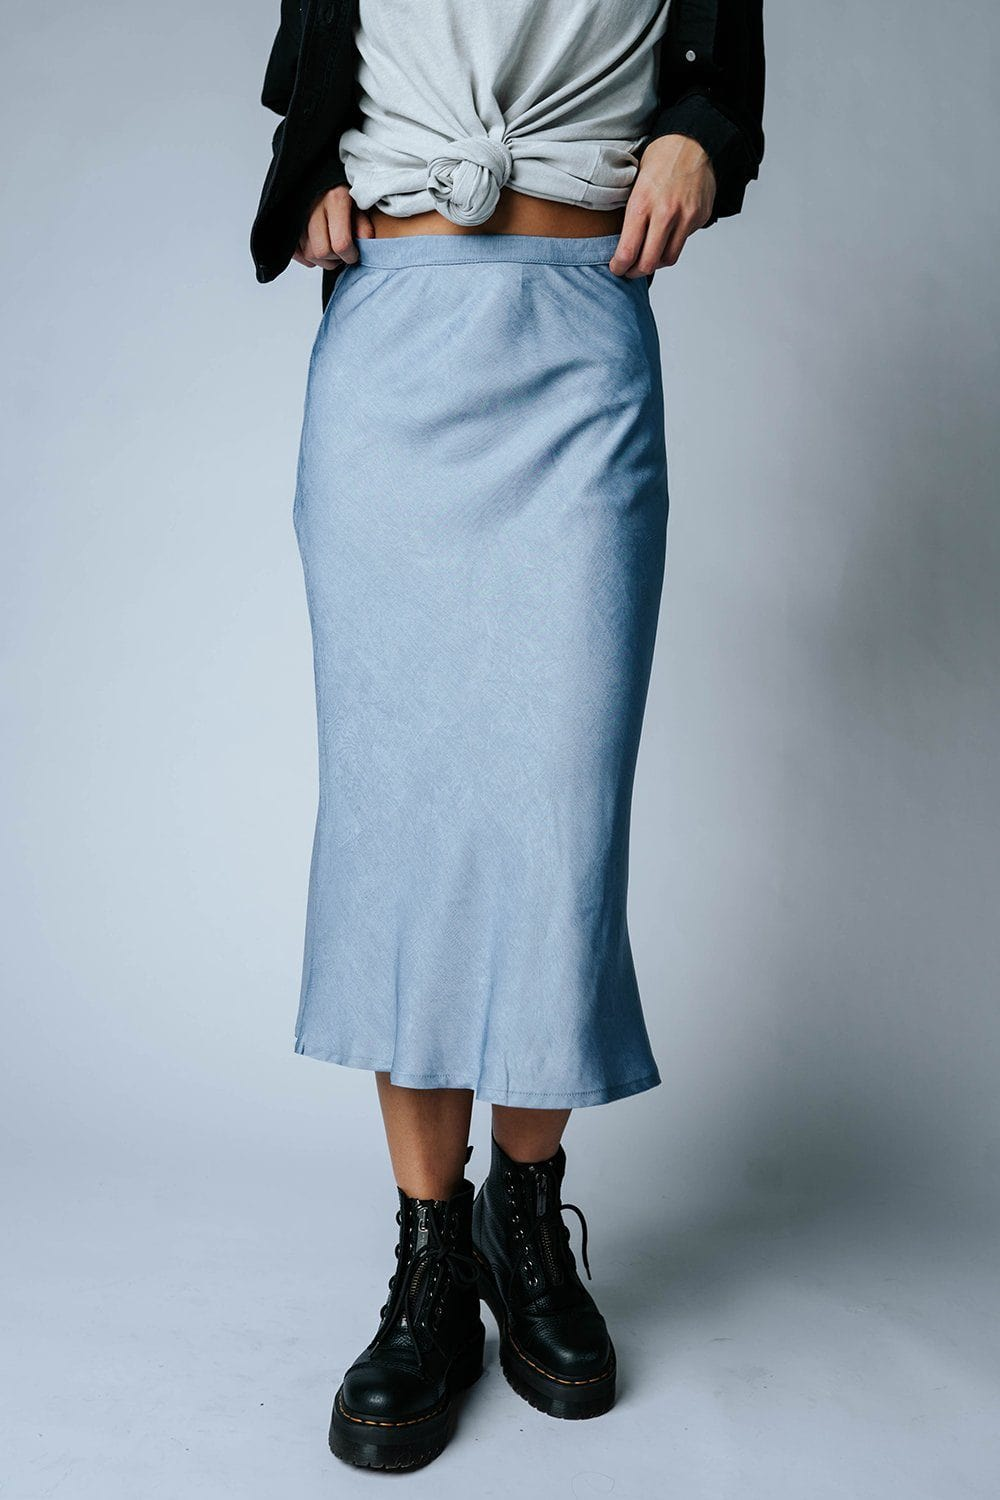 Blue Satin Skies Midi Skirt-Skirt-n/a-S-Clad & Cloth